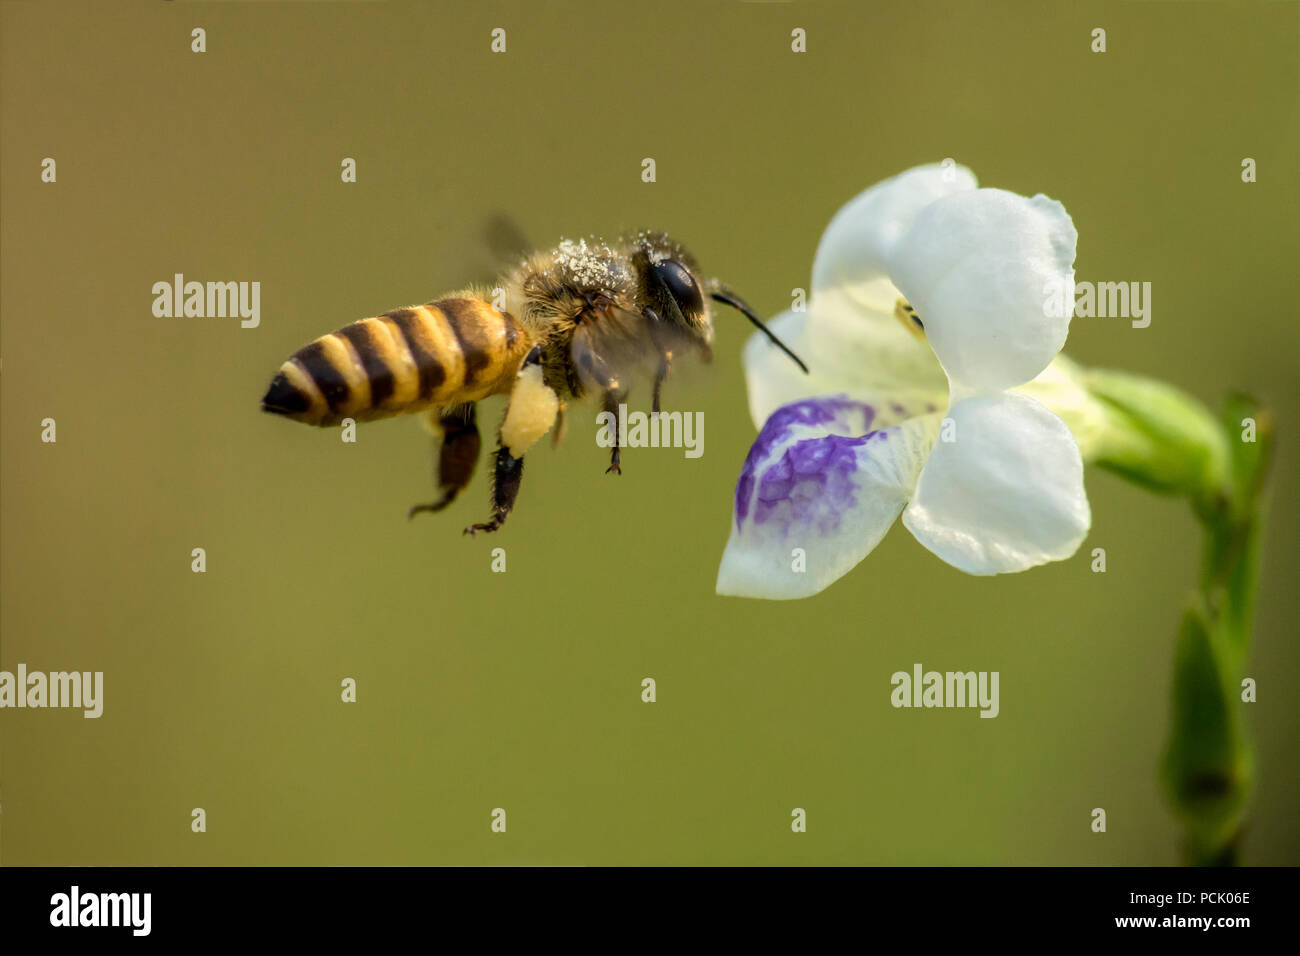 Close up Bee, Honeybee, Wasp, Hoverfly - Stock Image